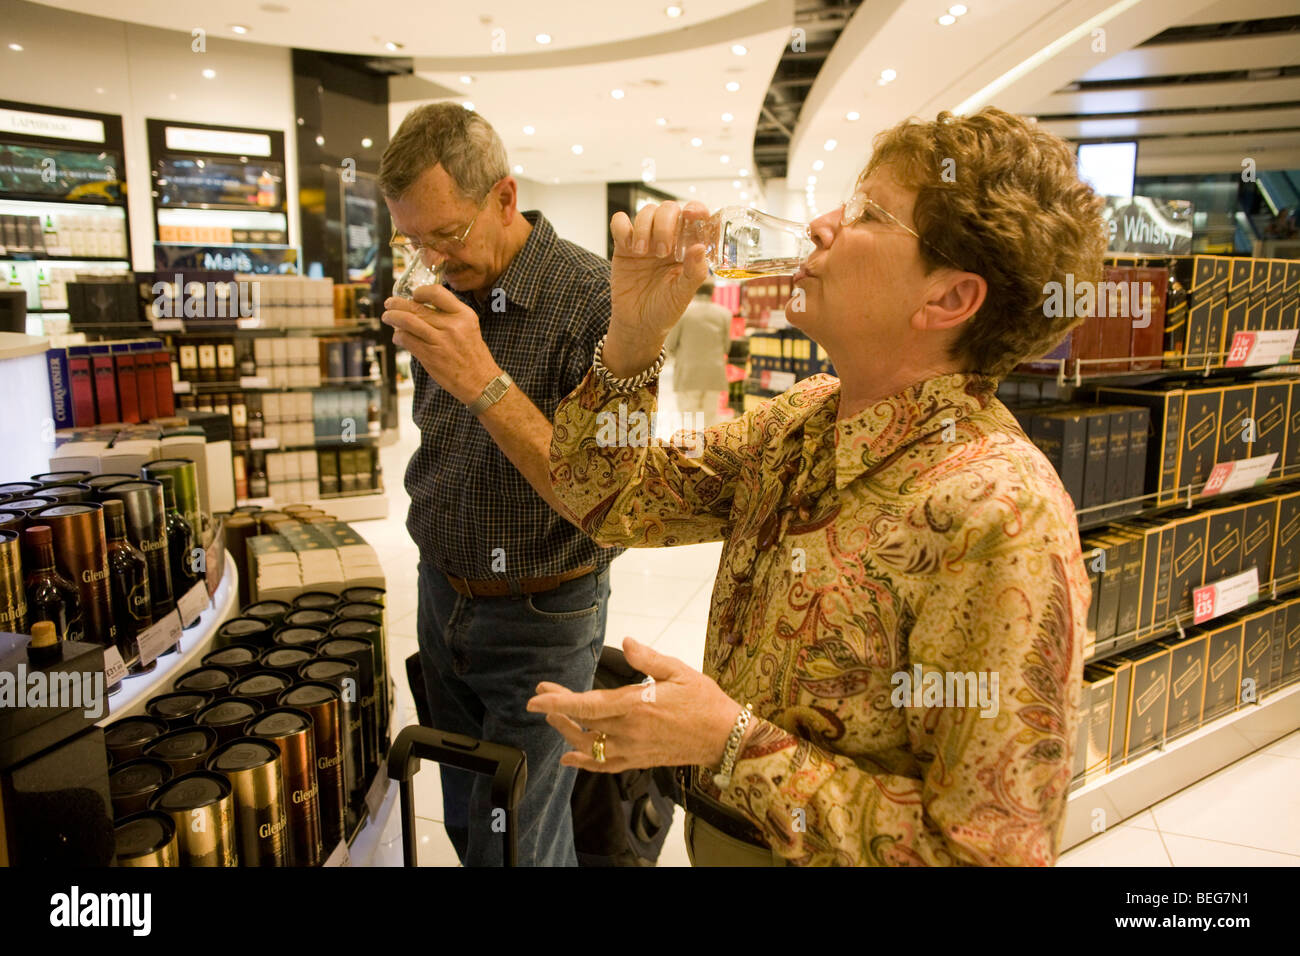 Two elderly passengers taste Scottish Malt Whiskey in a retail space called World of Duty Free in Heathrow airport's - Stock Image